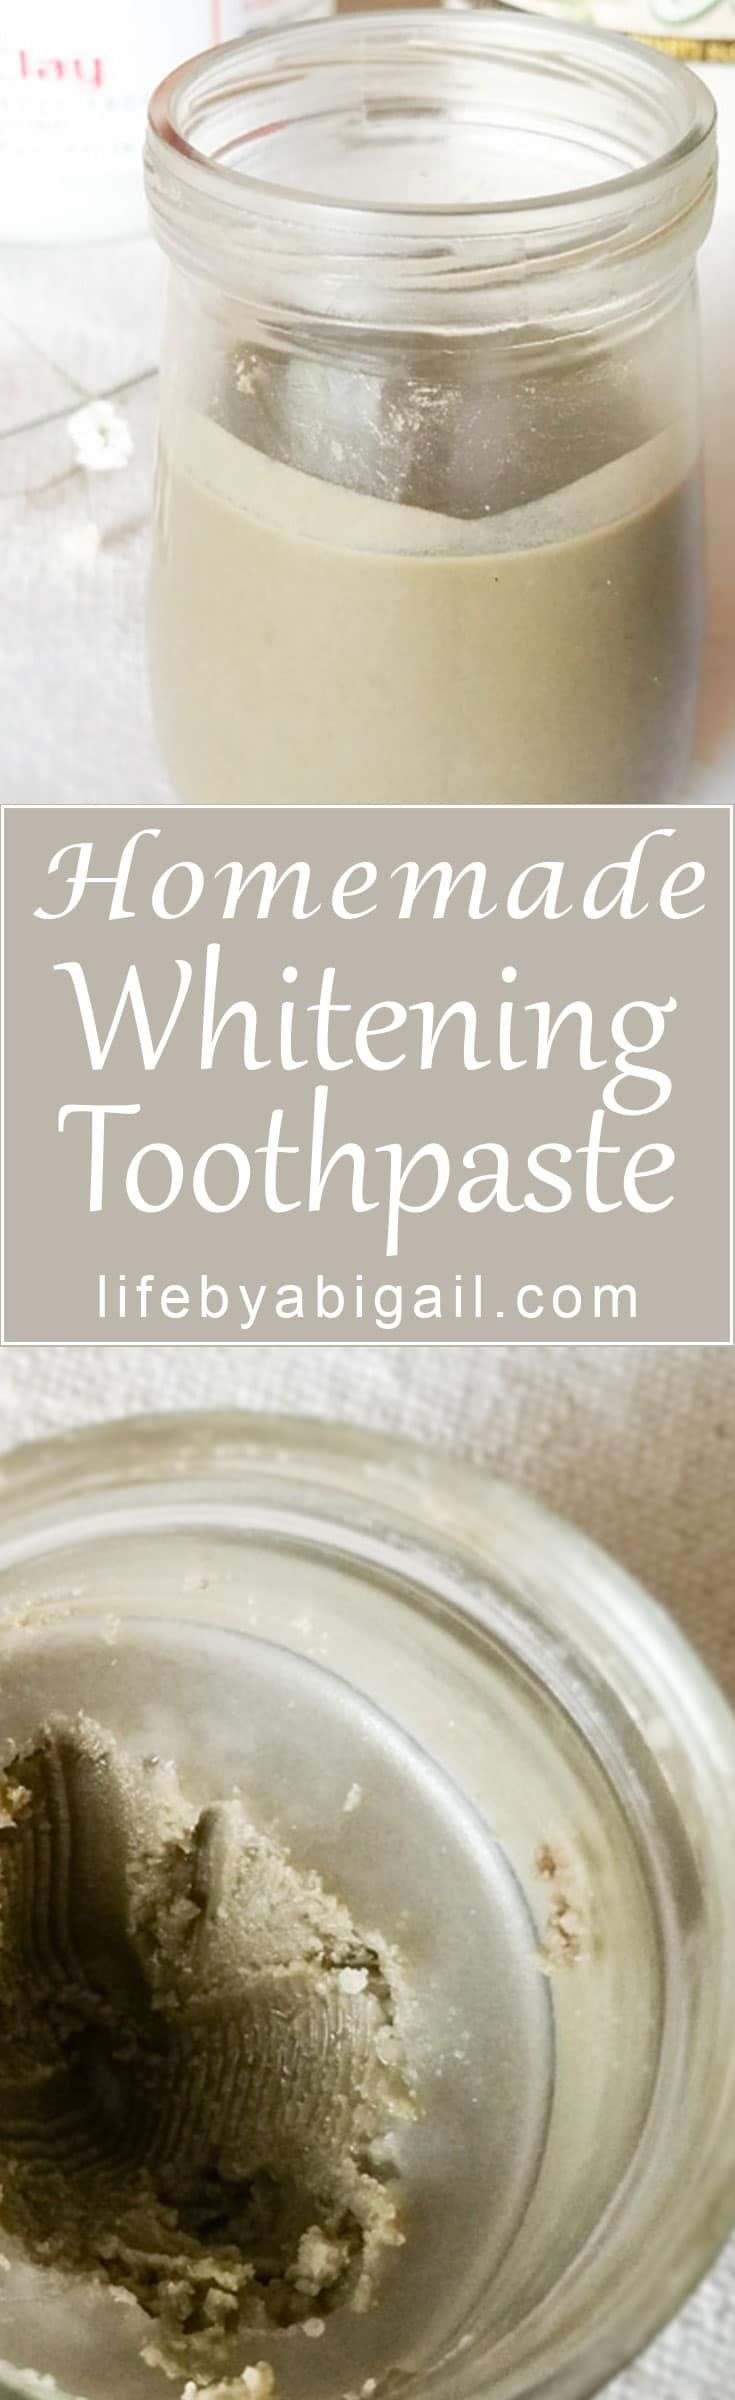 Homemade Whitening Toothpaste is fluoride-free and packed with natural benefits from Bentonite Clay and Essential Oils #homemade #whitening #toothpaste #essentialoils #diy #diytoothpaste #natural #healthy